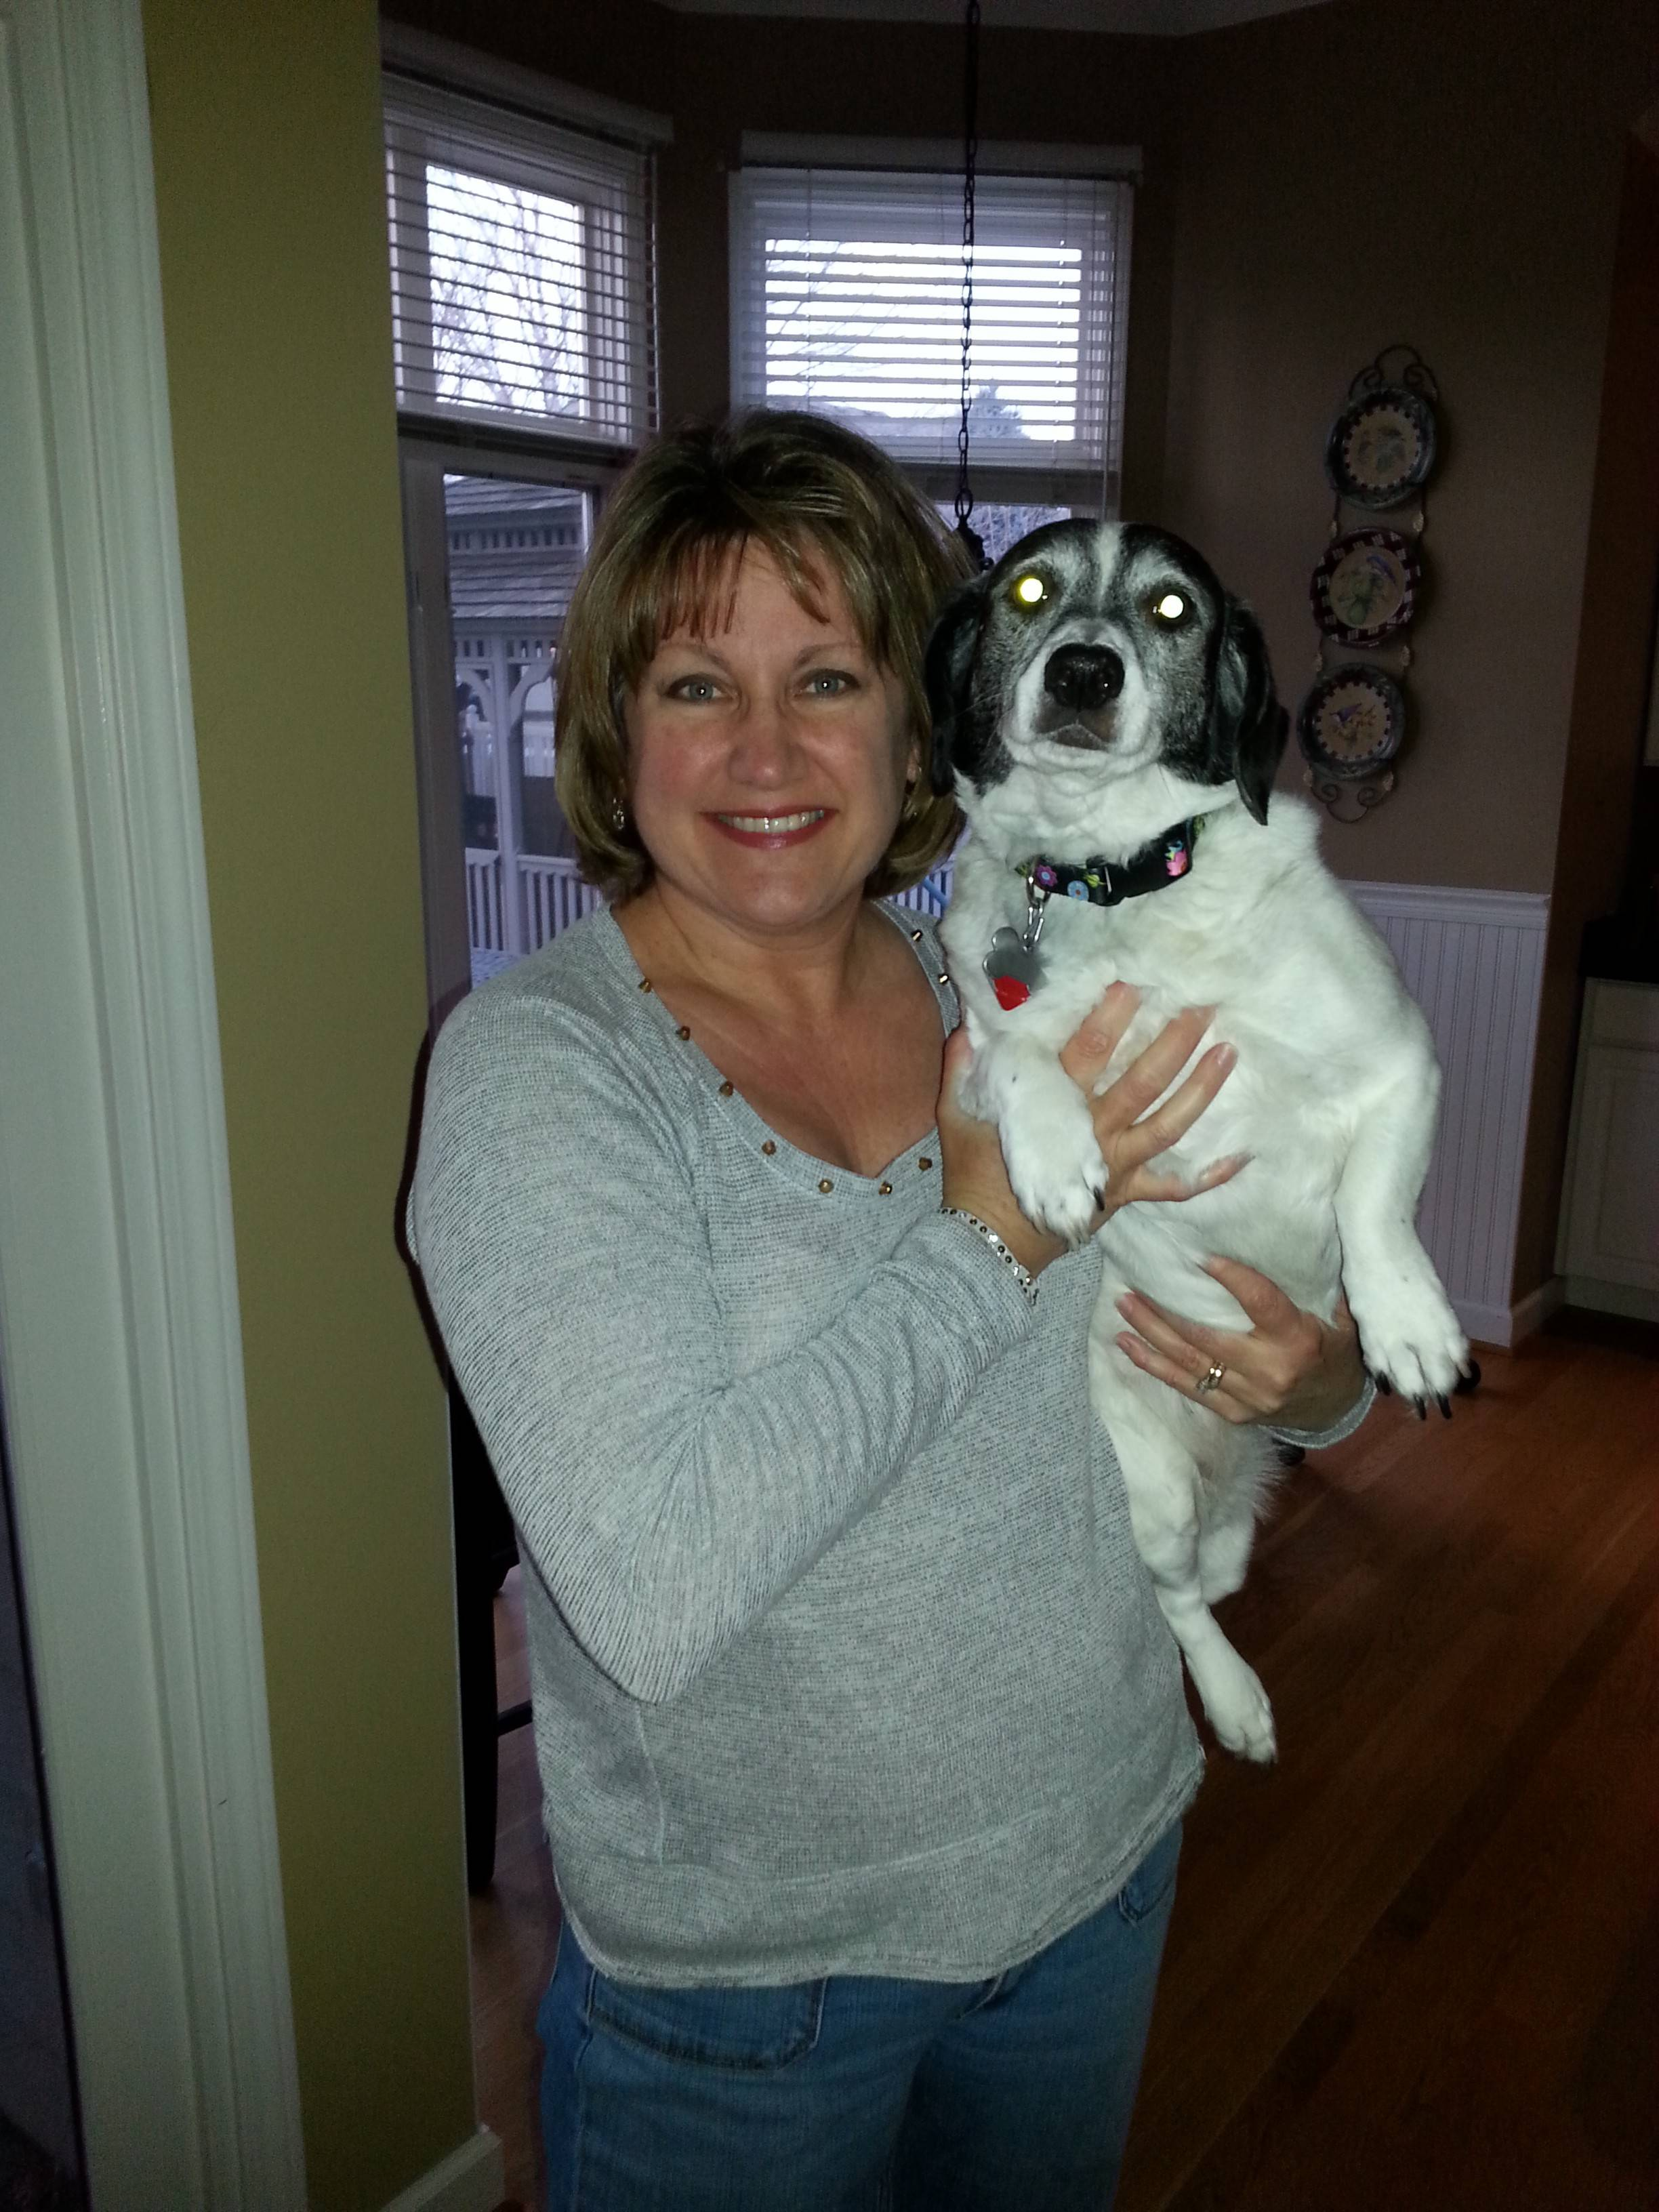 Laura Cosenza, a volunteer with Naperville Humane Society, will join the 2014 Human Race to benefit the organization. In 2013, her dog Maggy, adopted through the shelter, was the first dog to cross the finish line.